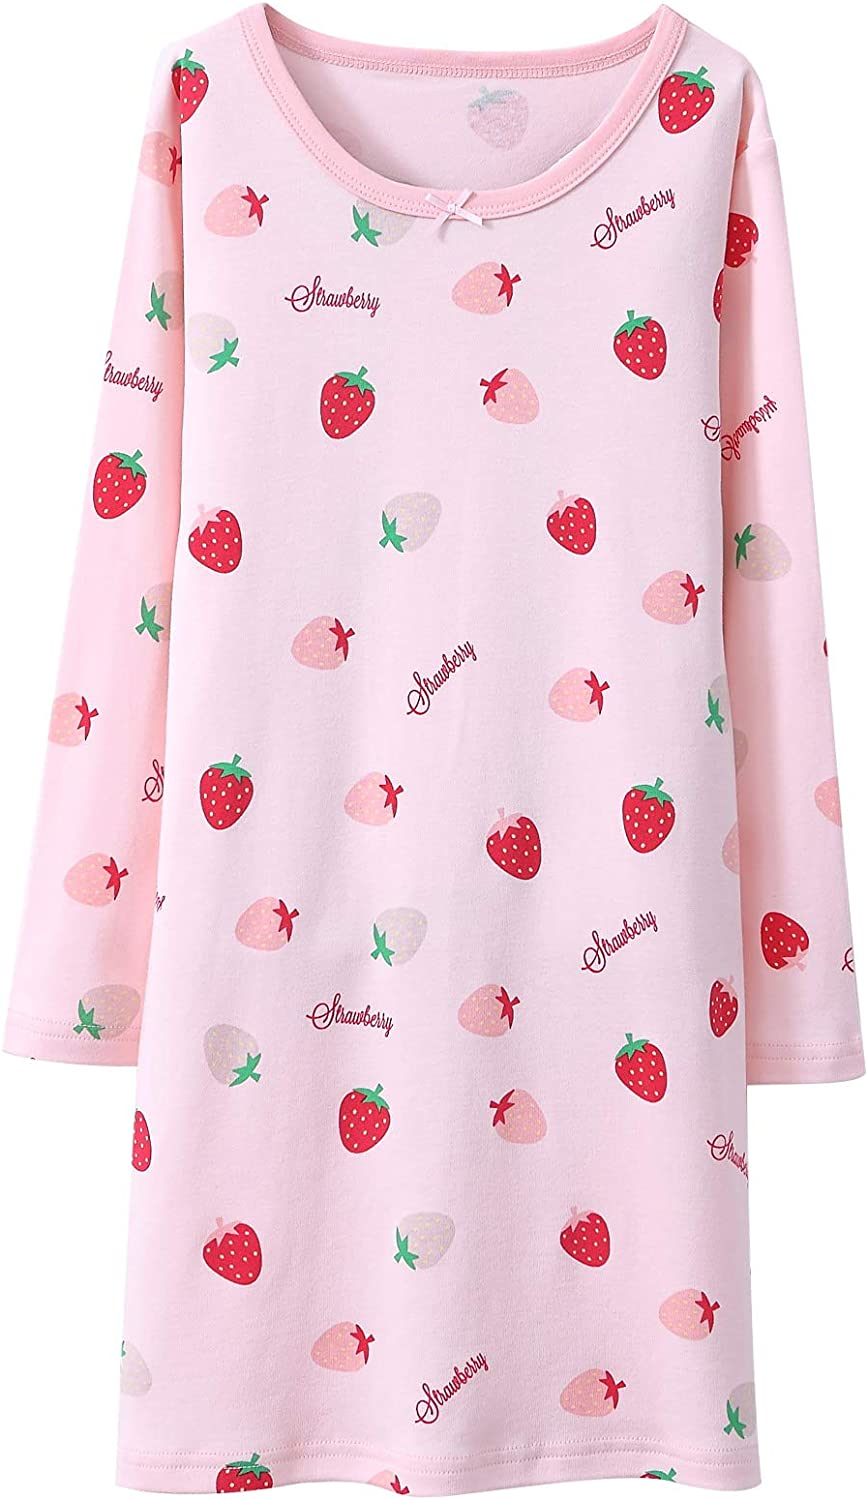 Baby Toddler Lace Bowknot Nightdress Cotton Long Sleeve Nightgowns Sleepwear for 3-10 Years Auranso Girls Nighties